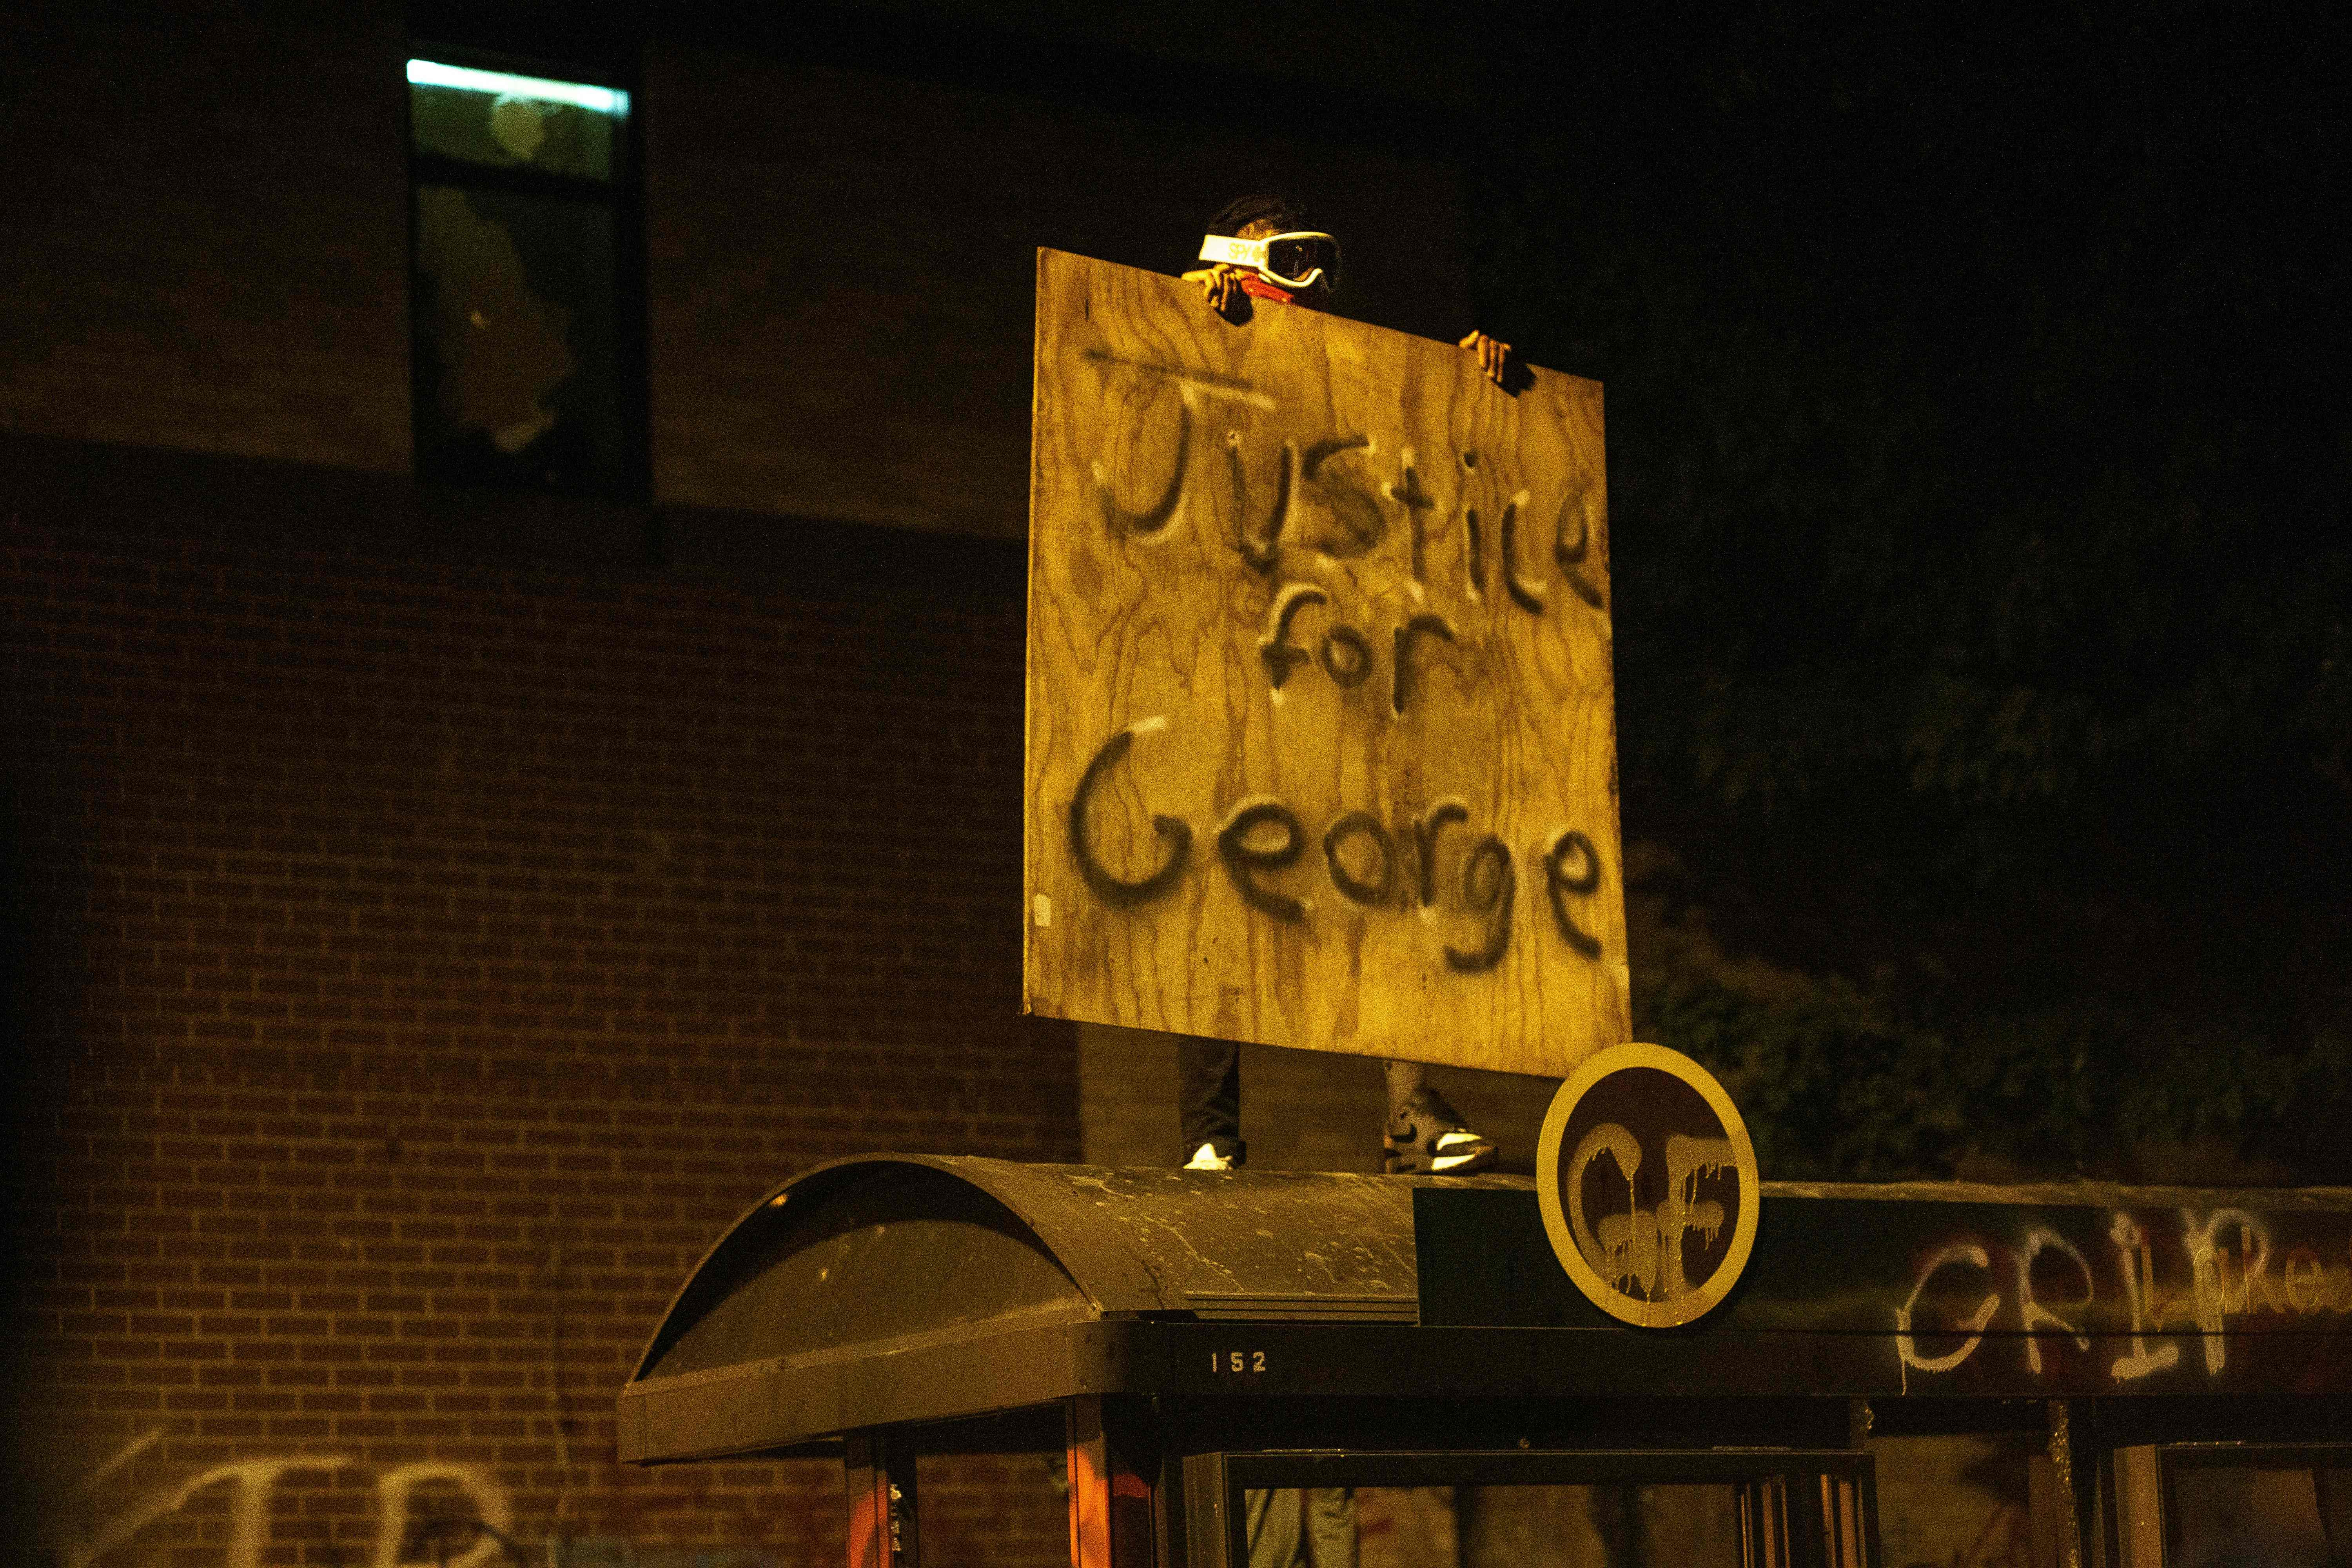 """A protester stands atop a bus stop, holding a piece of plywood spray-painted with """"Justice for George"""" in black, at night."""